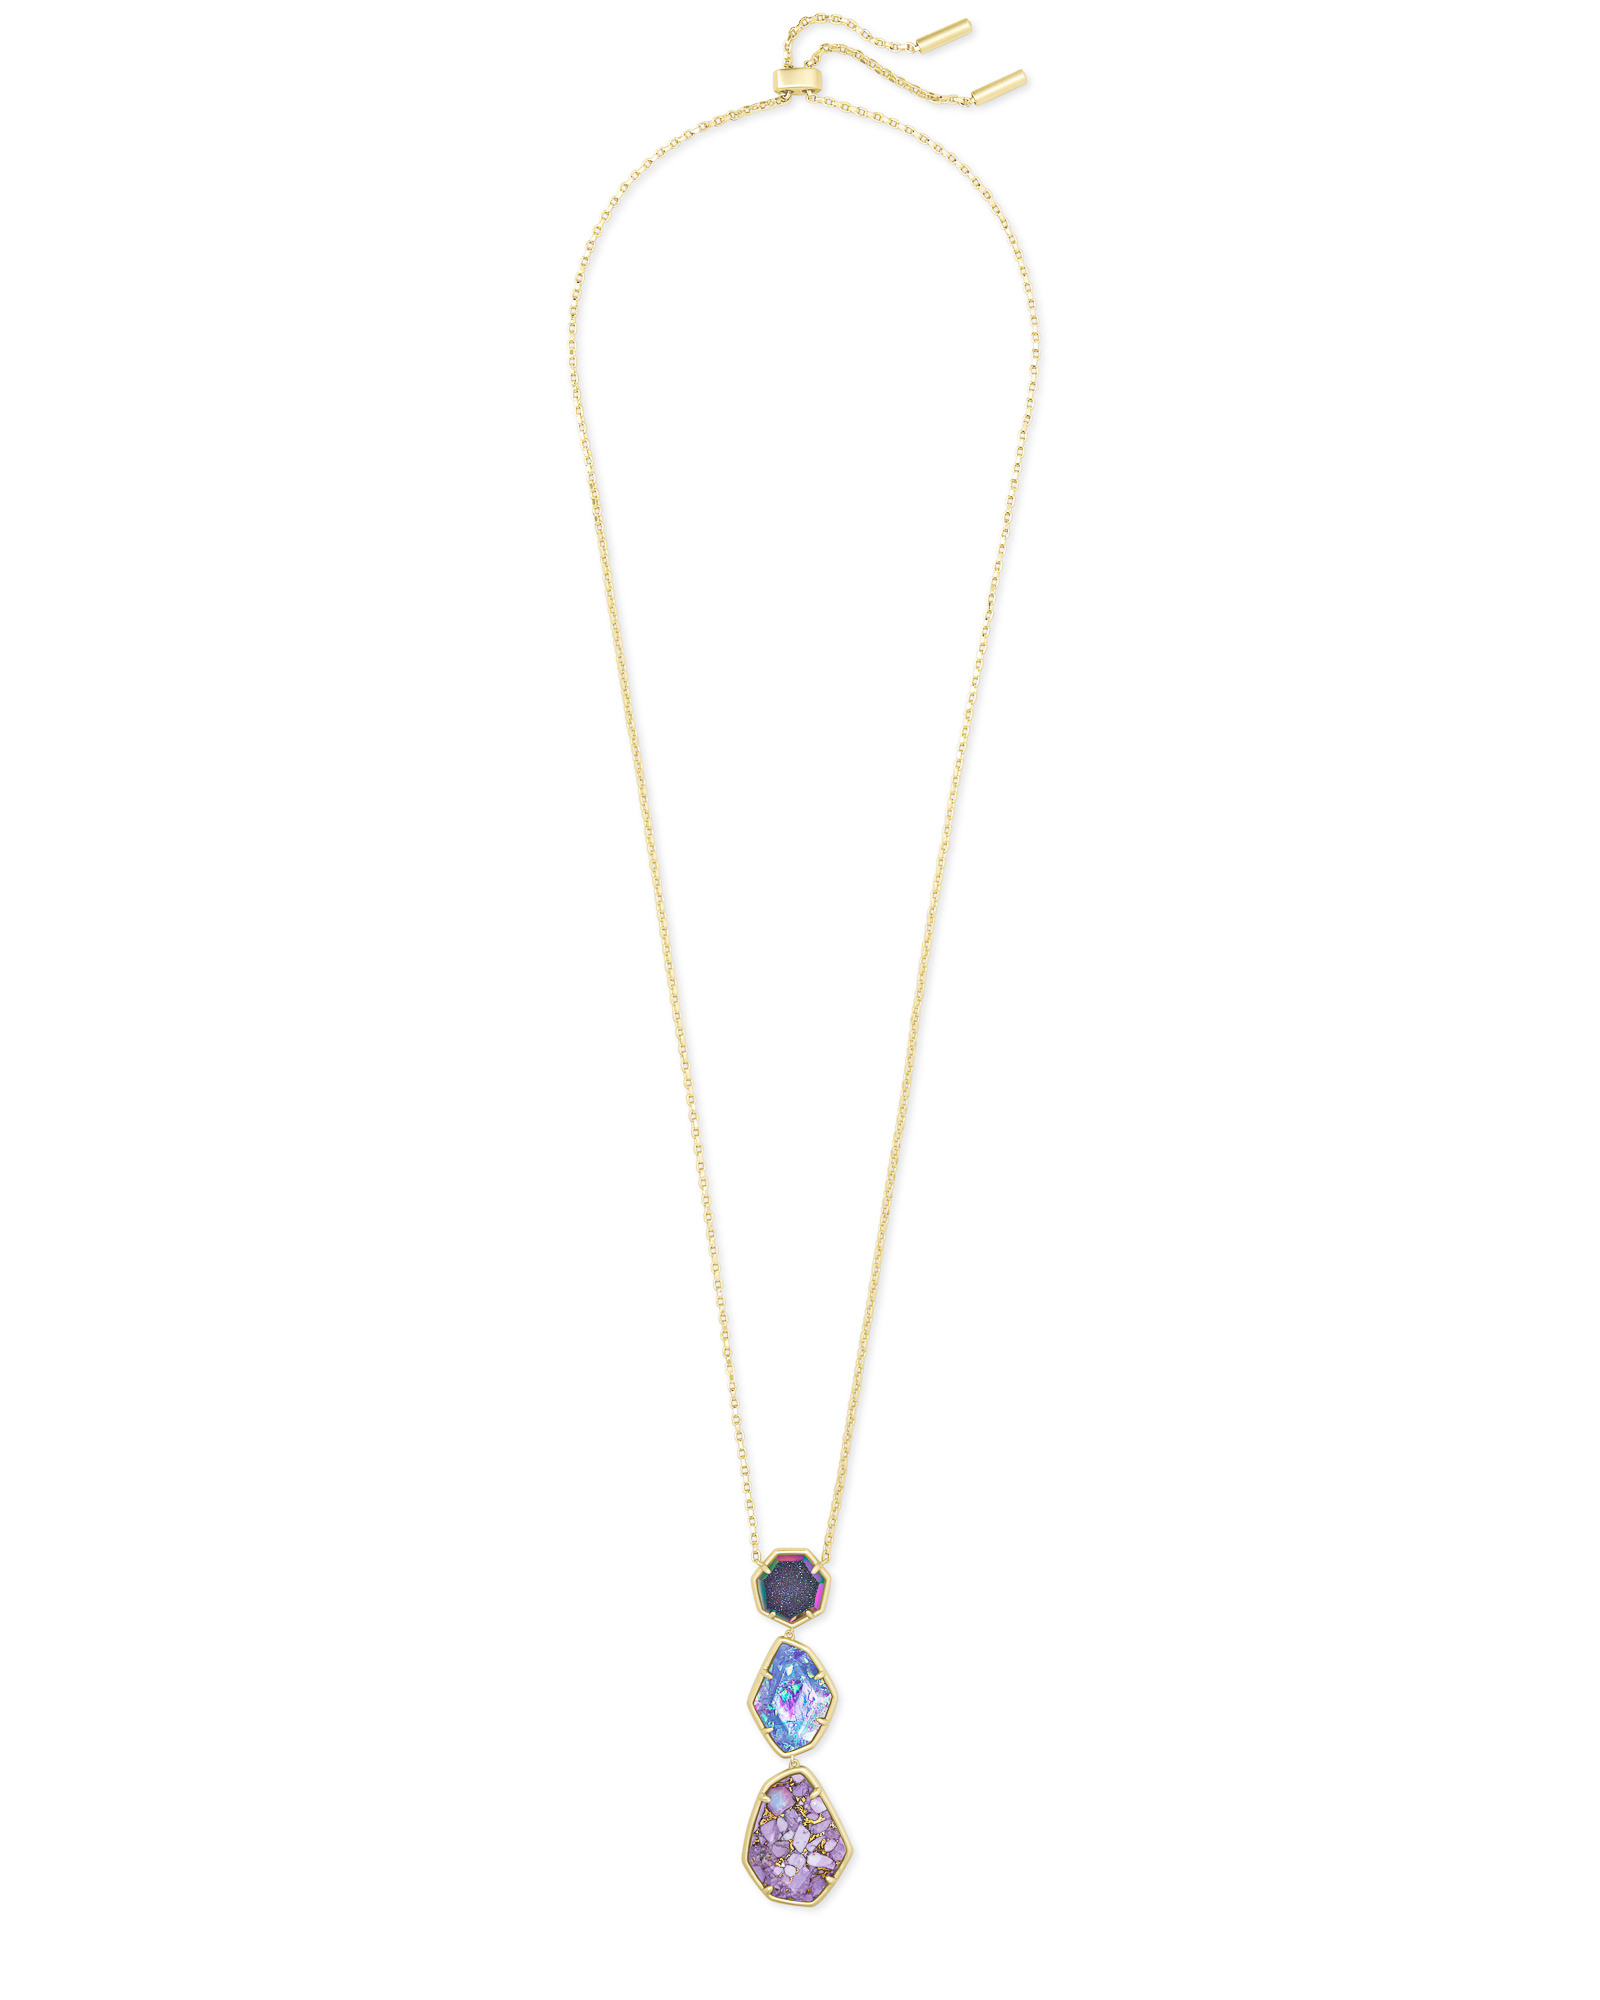 Nina Gold Long Pendant Necklace in Purple Mix